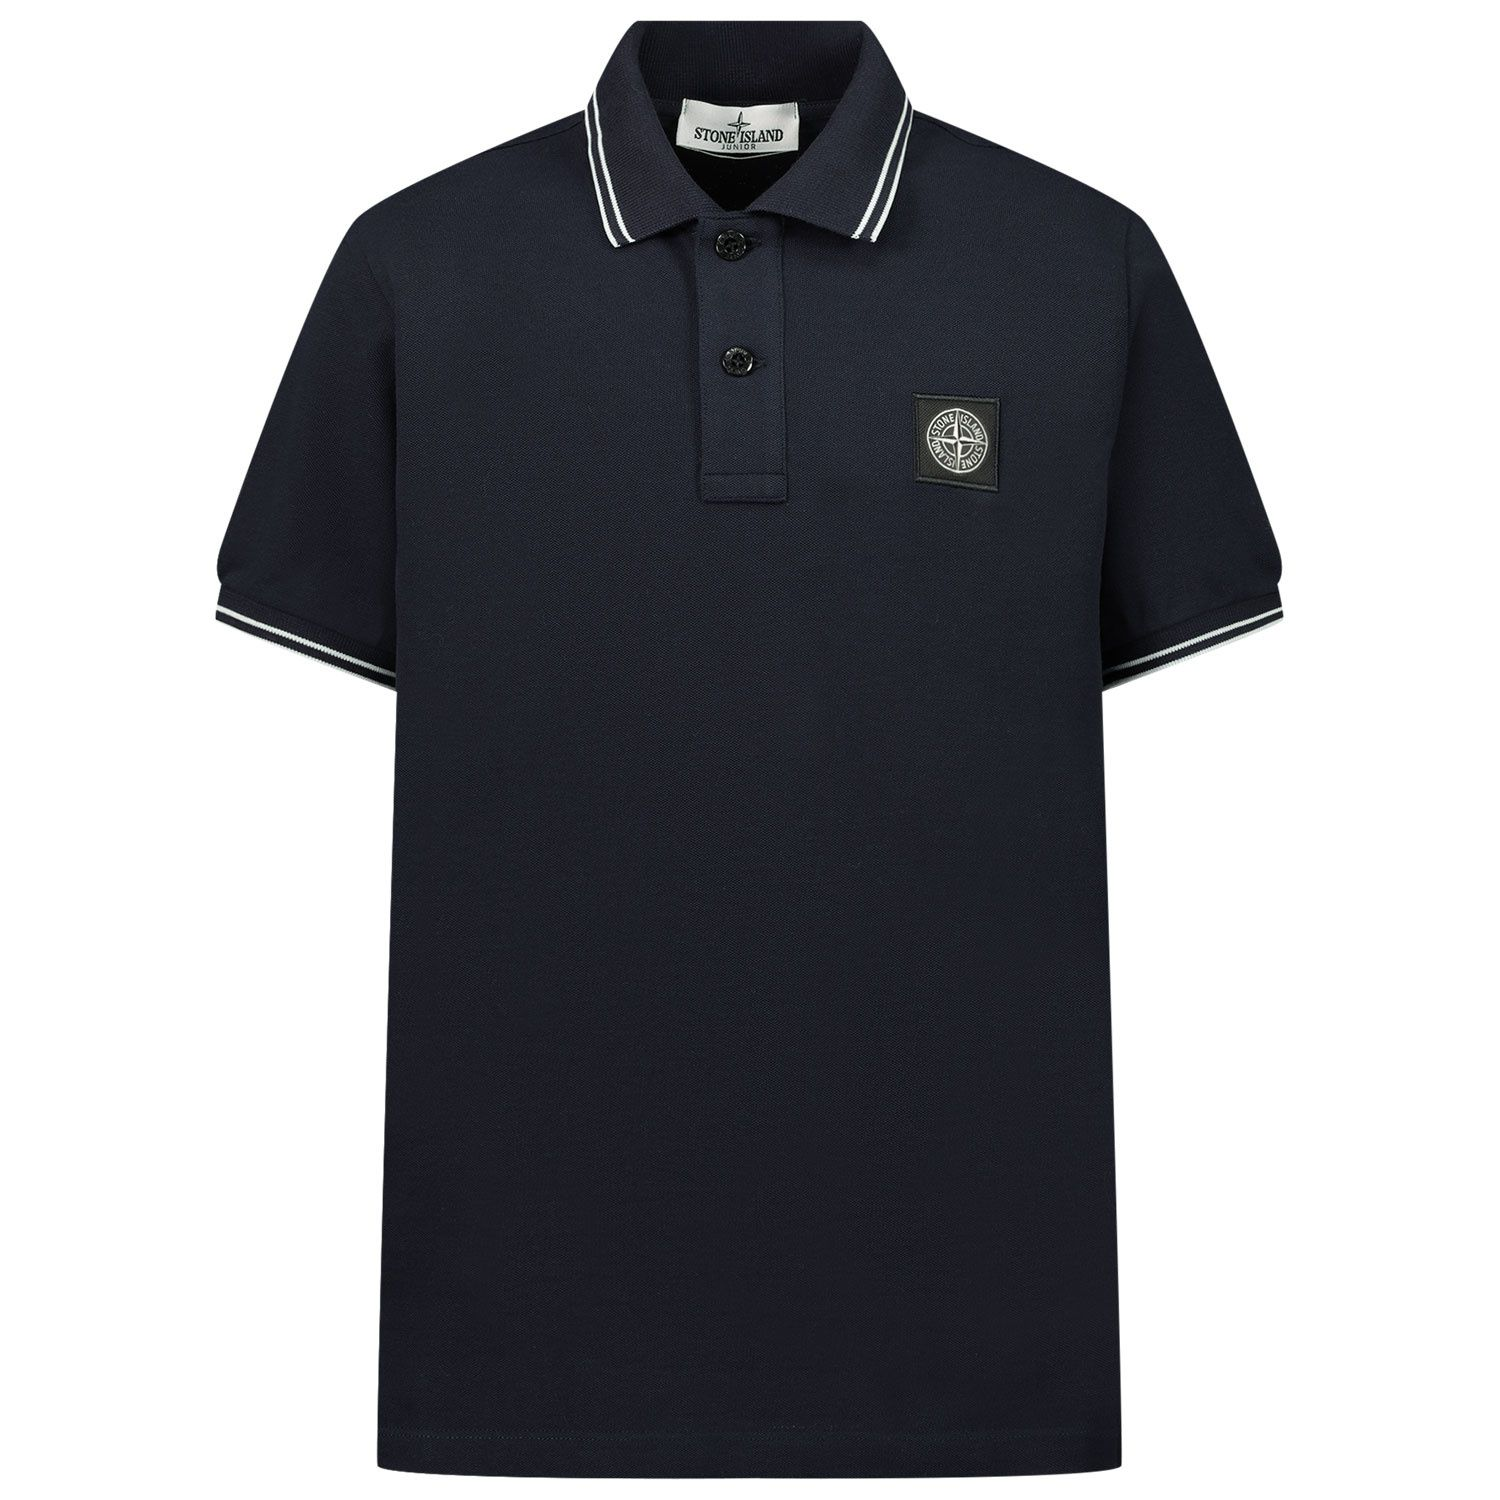 Picture of Stone Island 21348 kids polo shirt navy